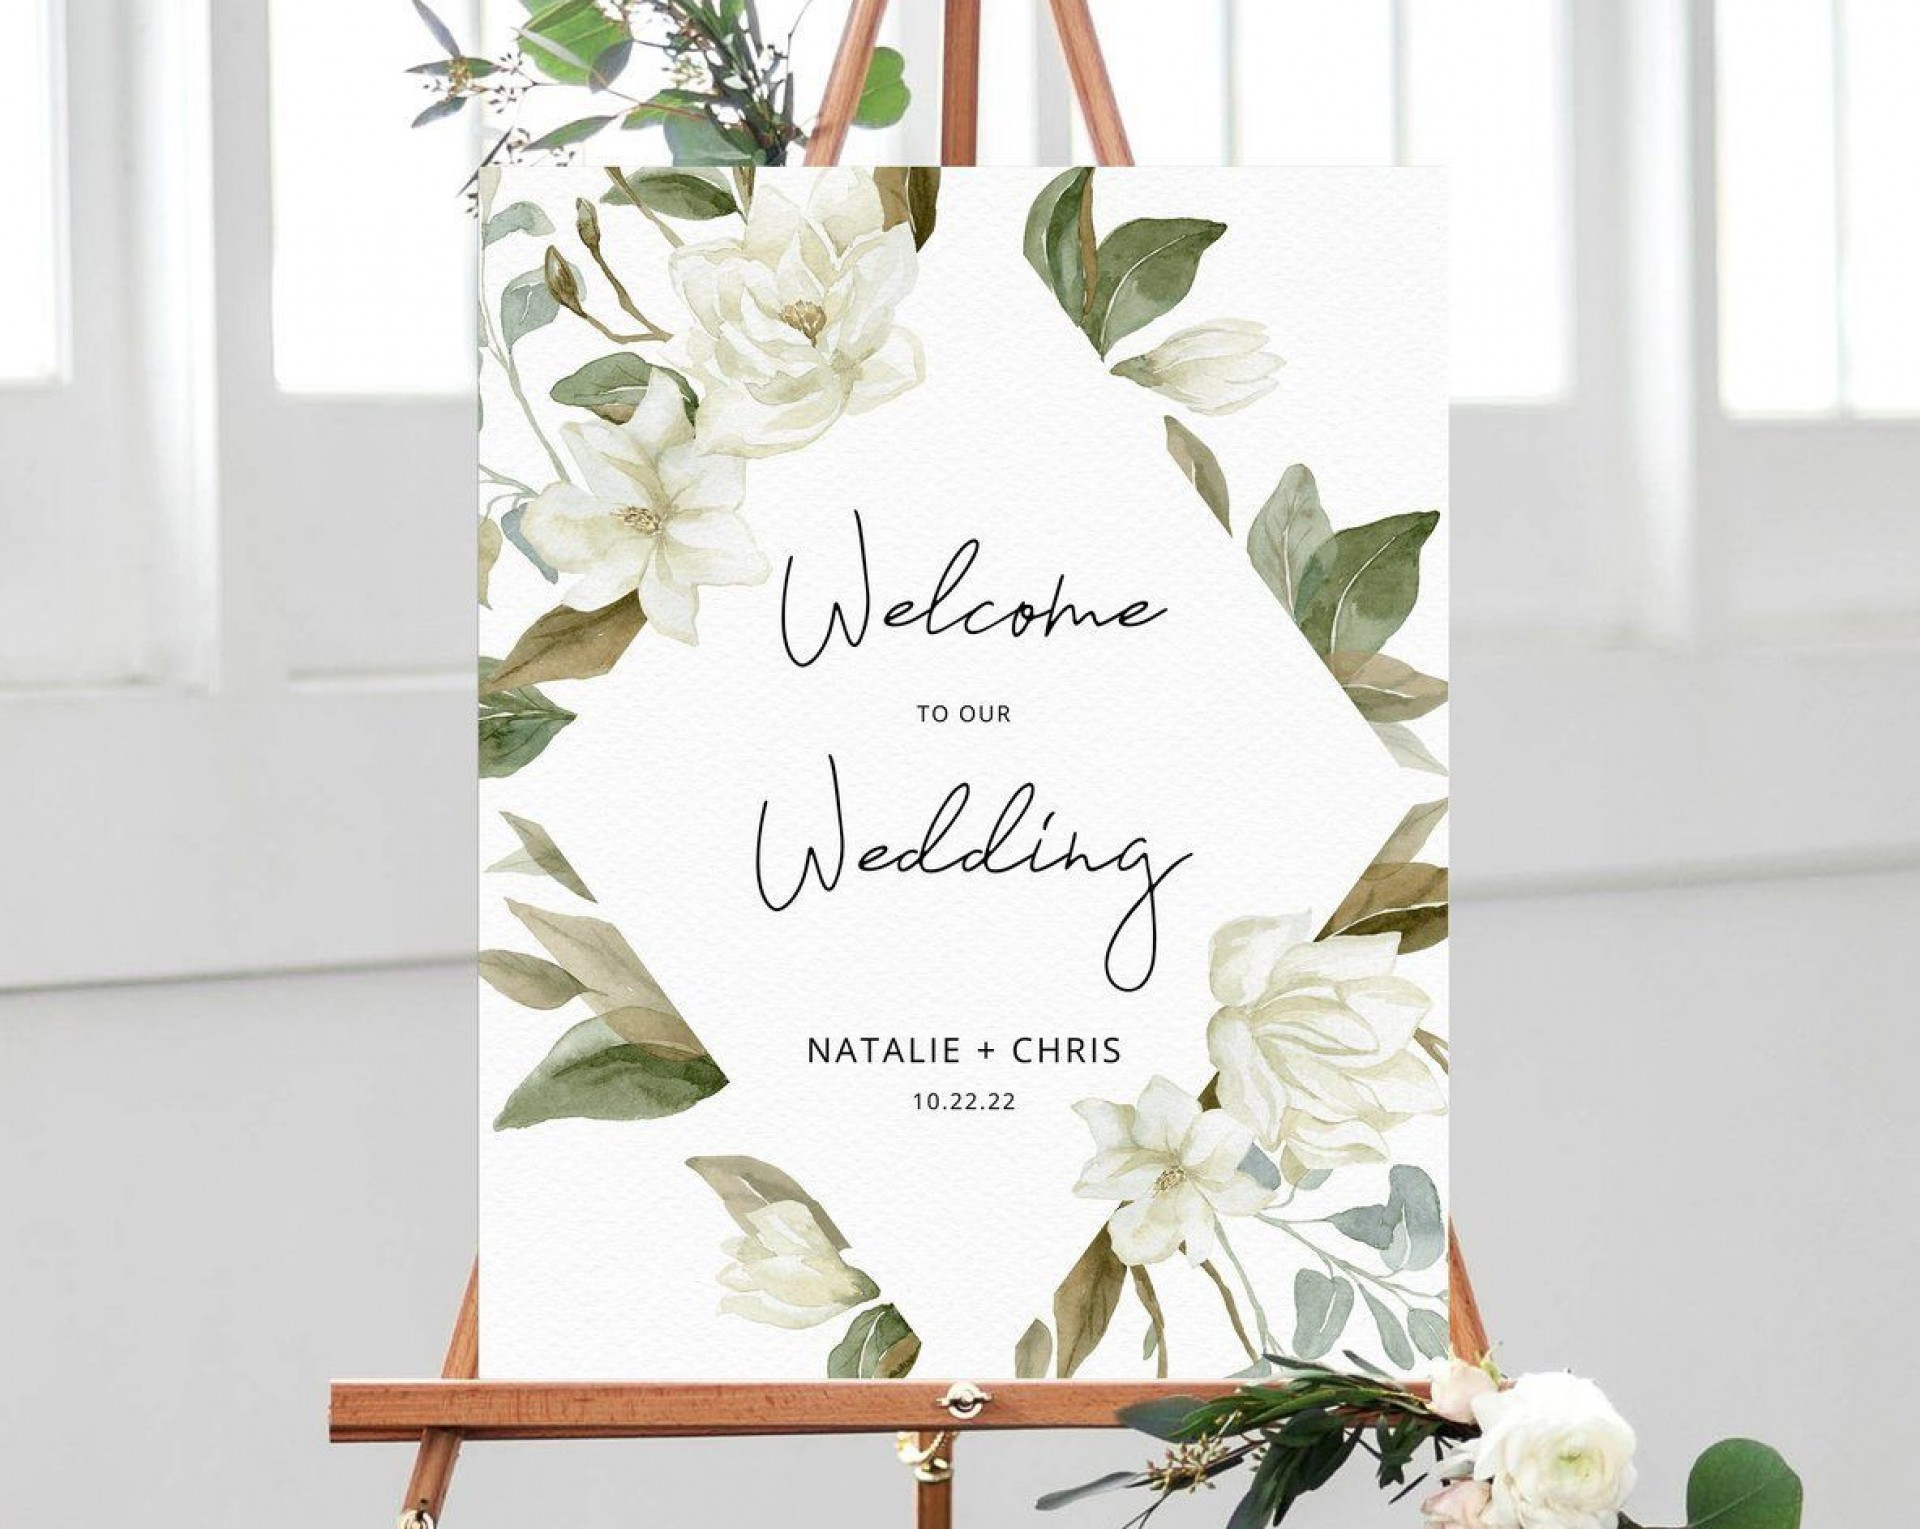 002 Best Wedding Welcome Sign Template Free Inspiration 1920